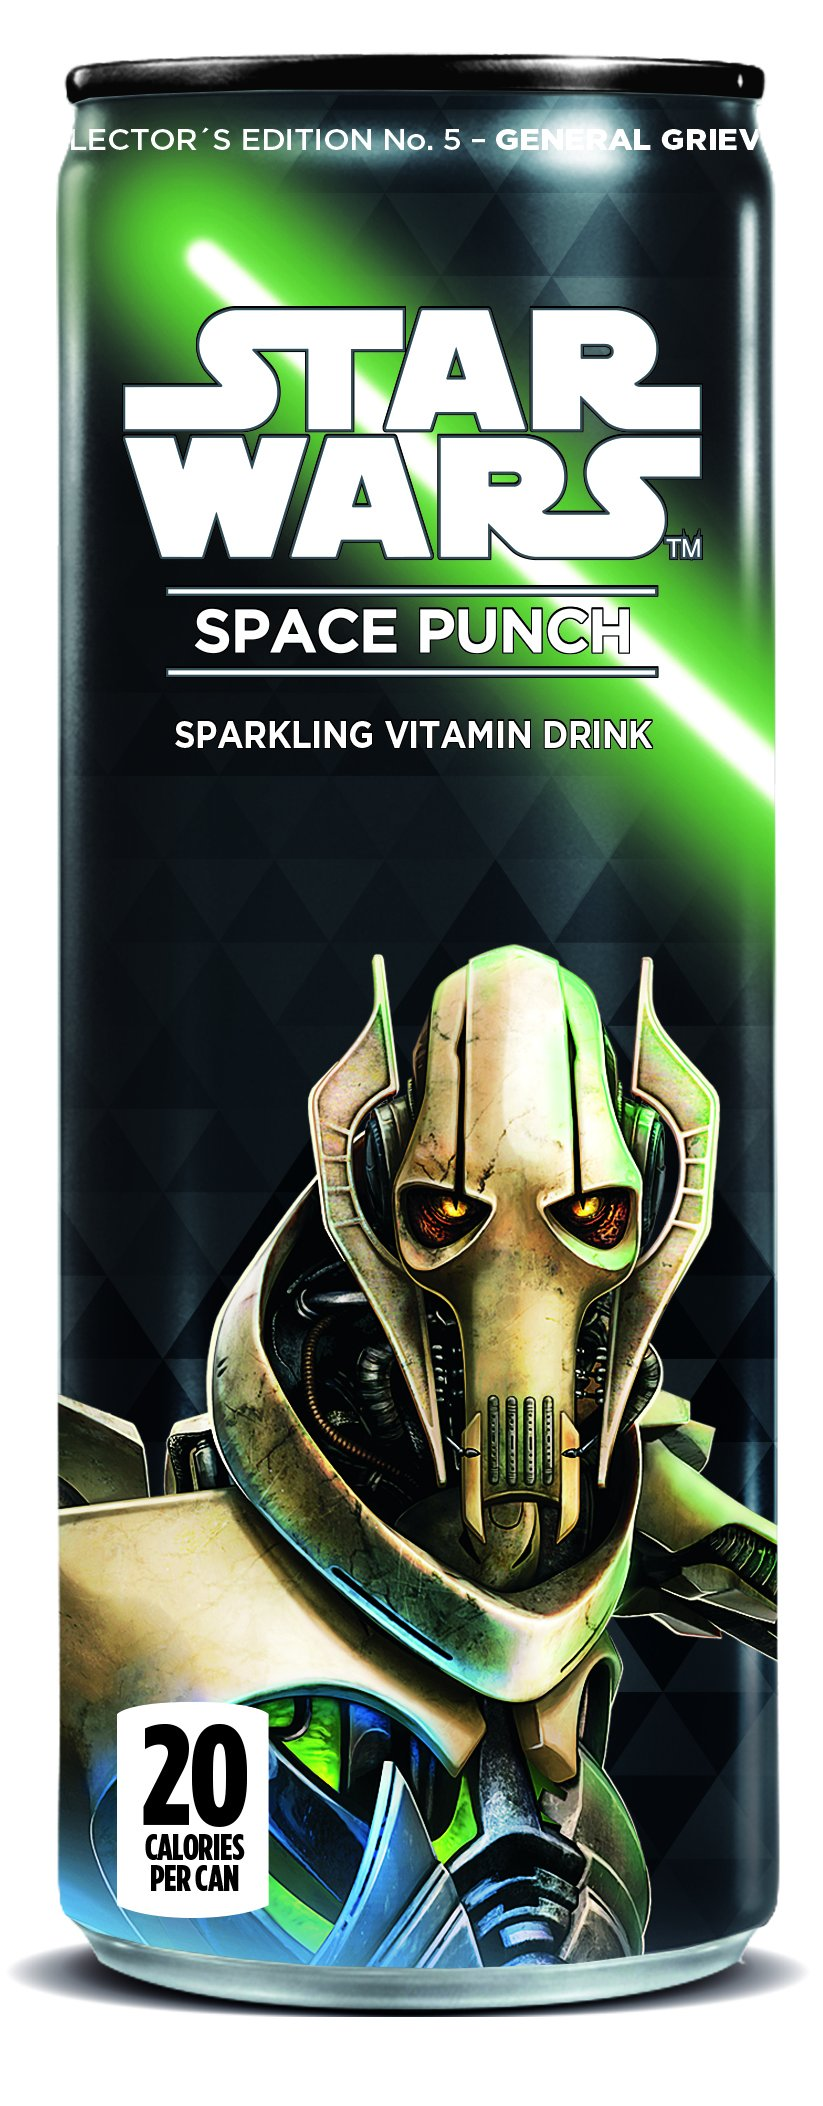 Star Wars Space Punch Sparkling Vitamin Drink, Collectors Edition No.5- General Grievous, 12 Oz. Cans (Pack of 12)